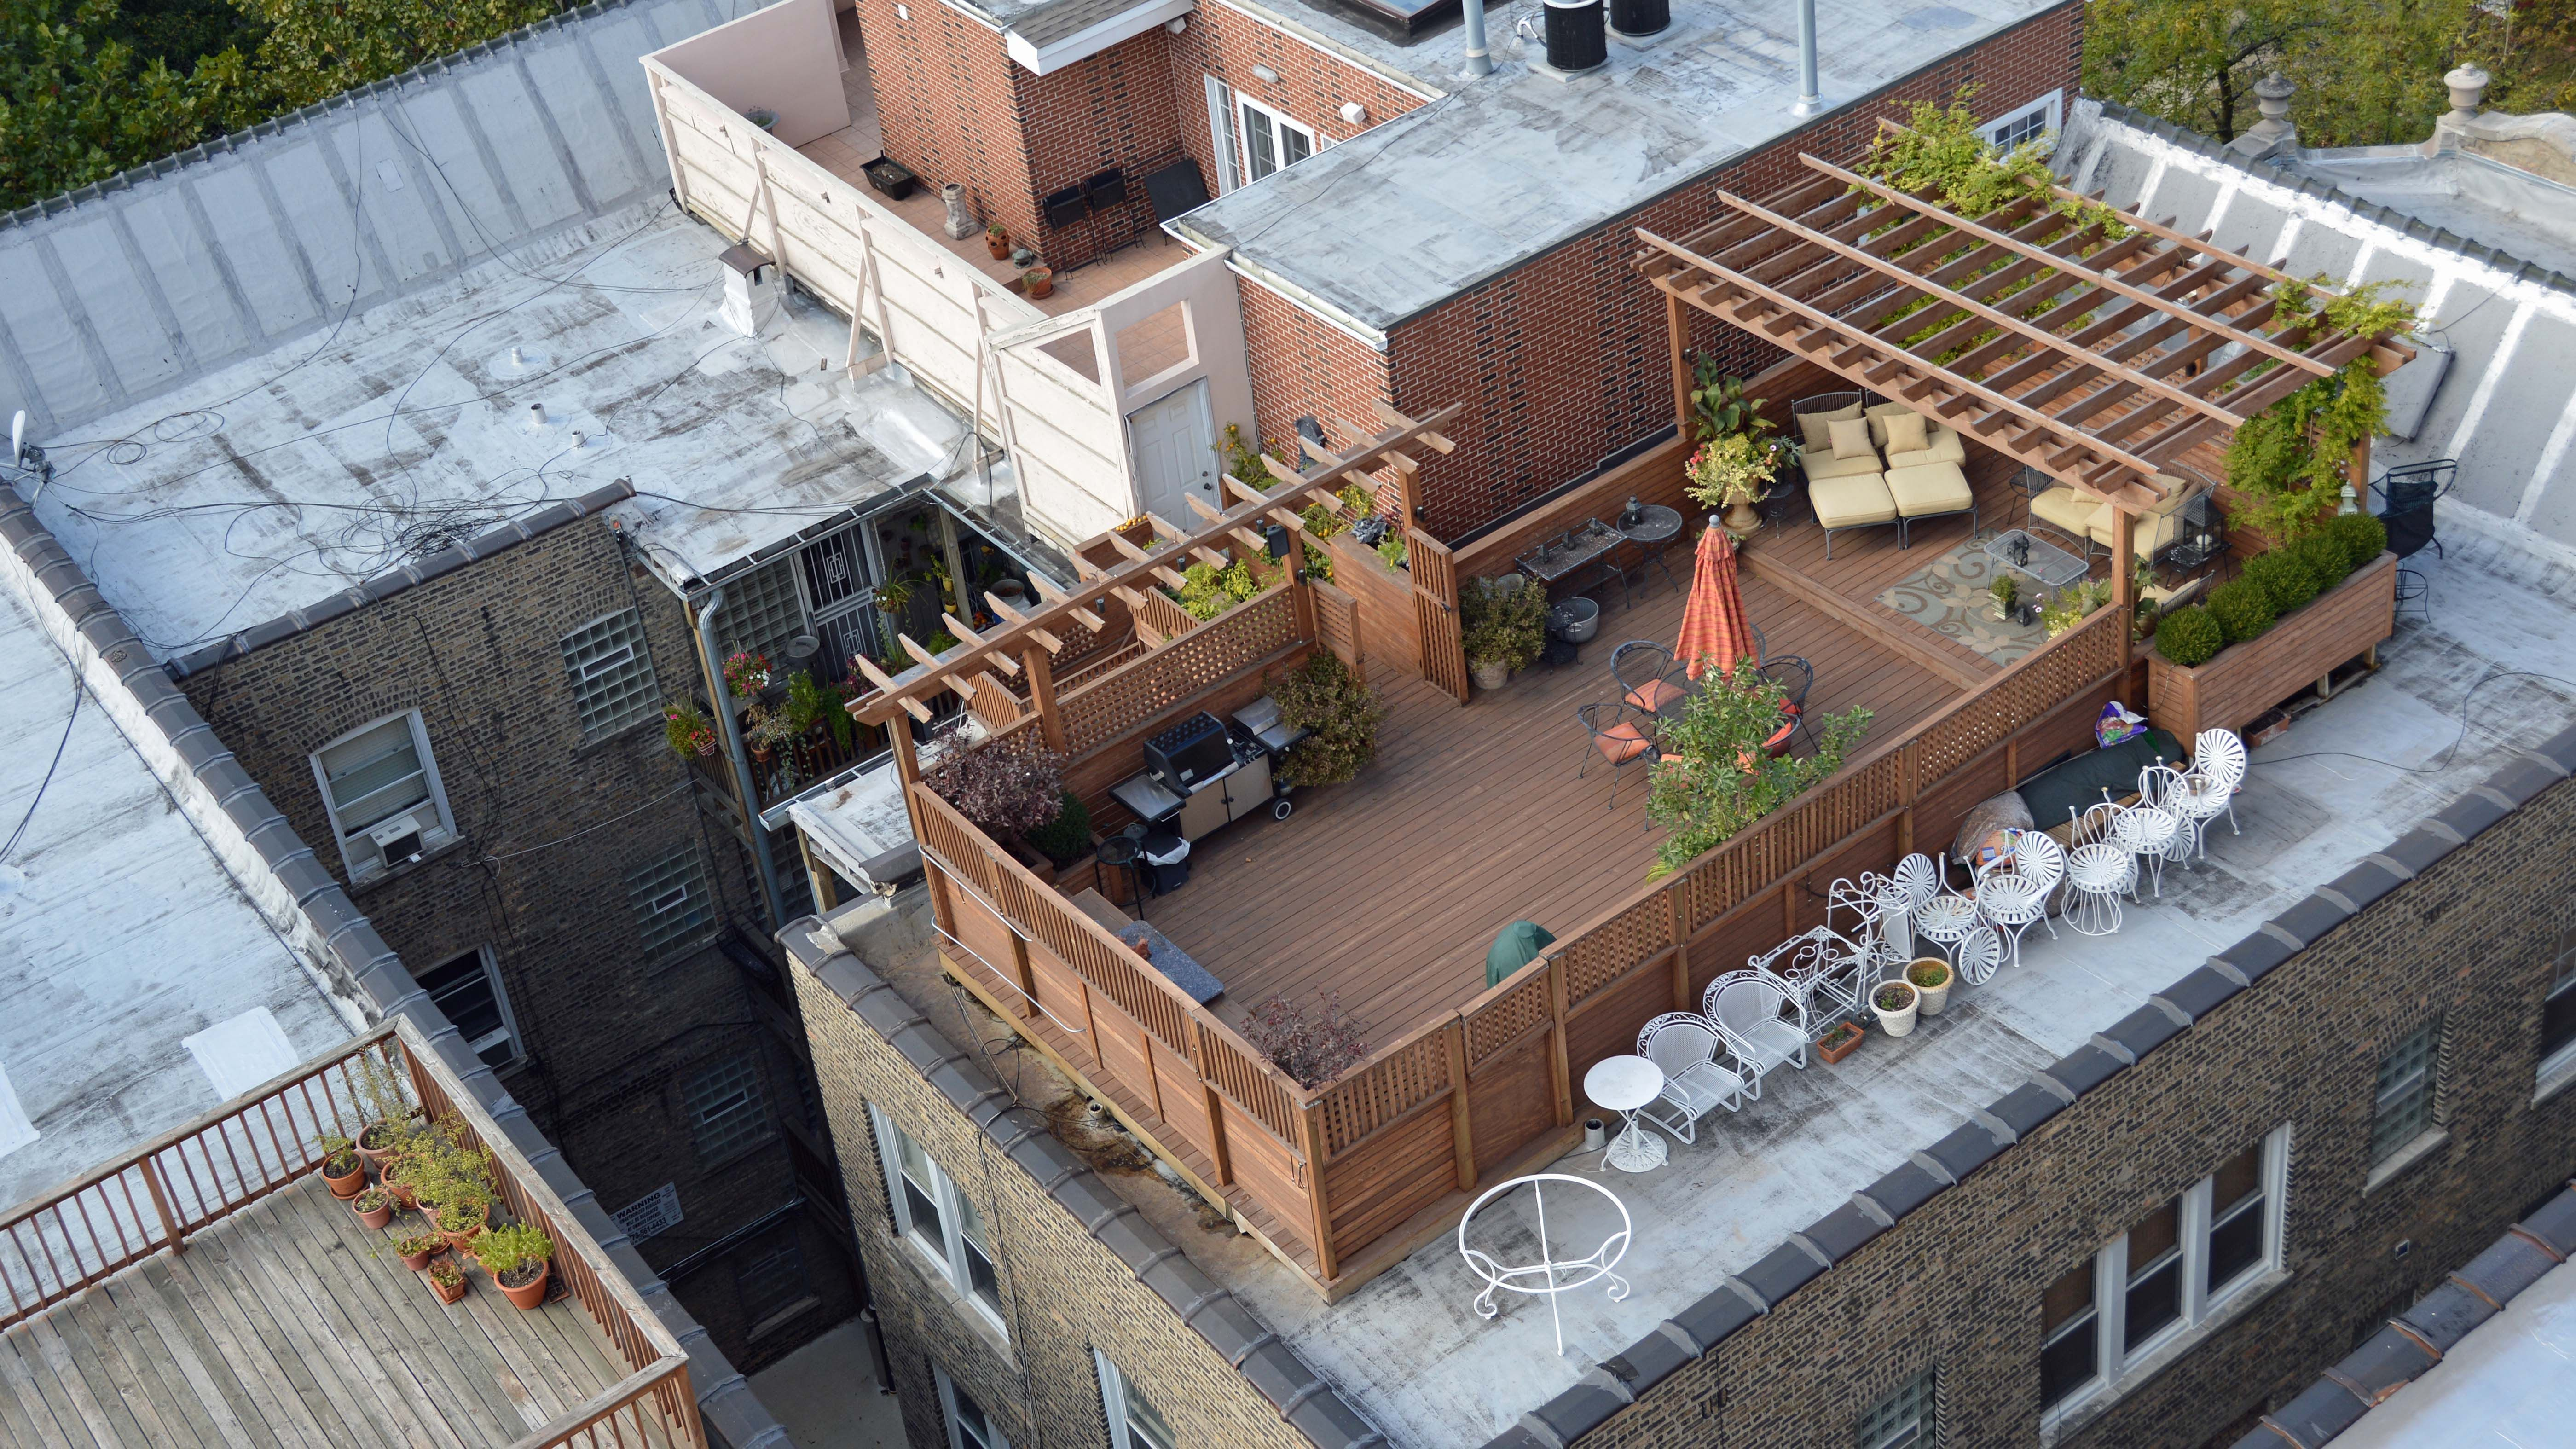 In Practice They Pay To Build Few Roof Decks Description From Yochicago Com I Searched For This On Bing Com Images Roof Deck Building A Deck Pergola Shade